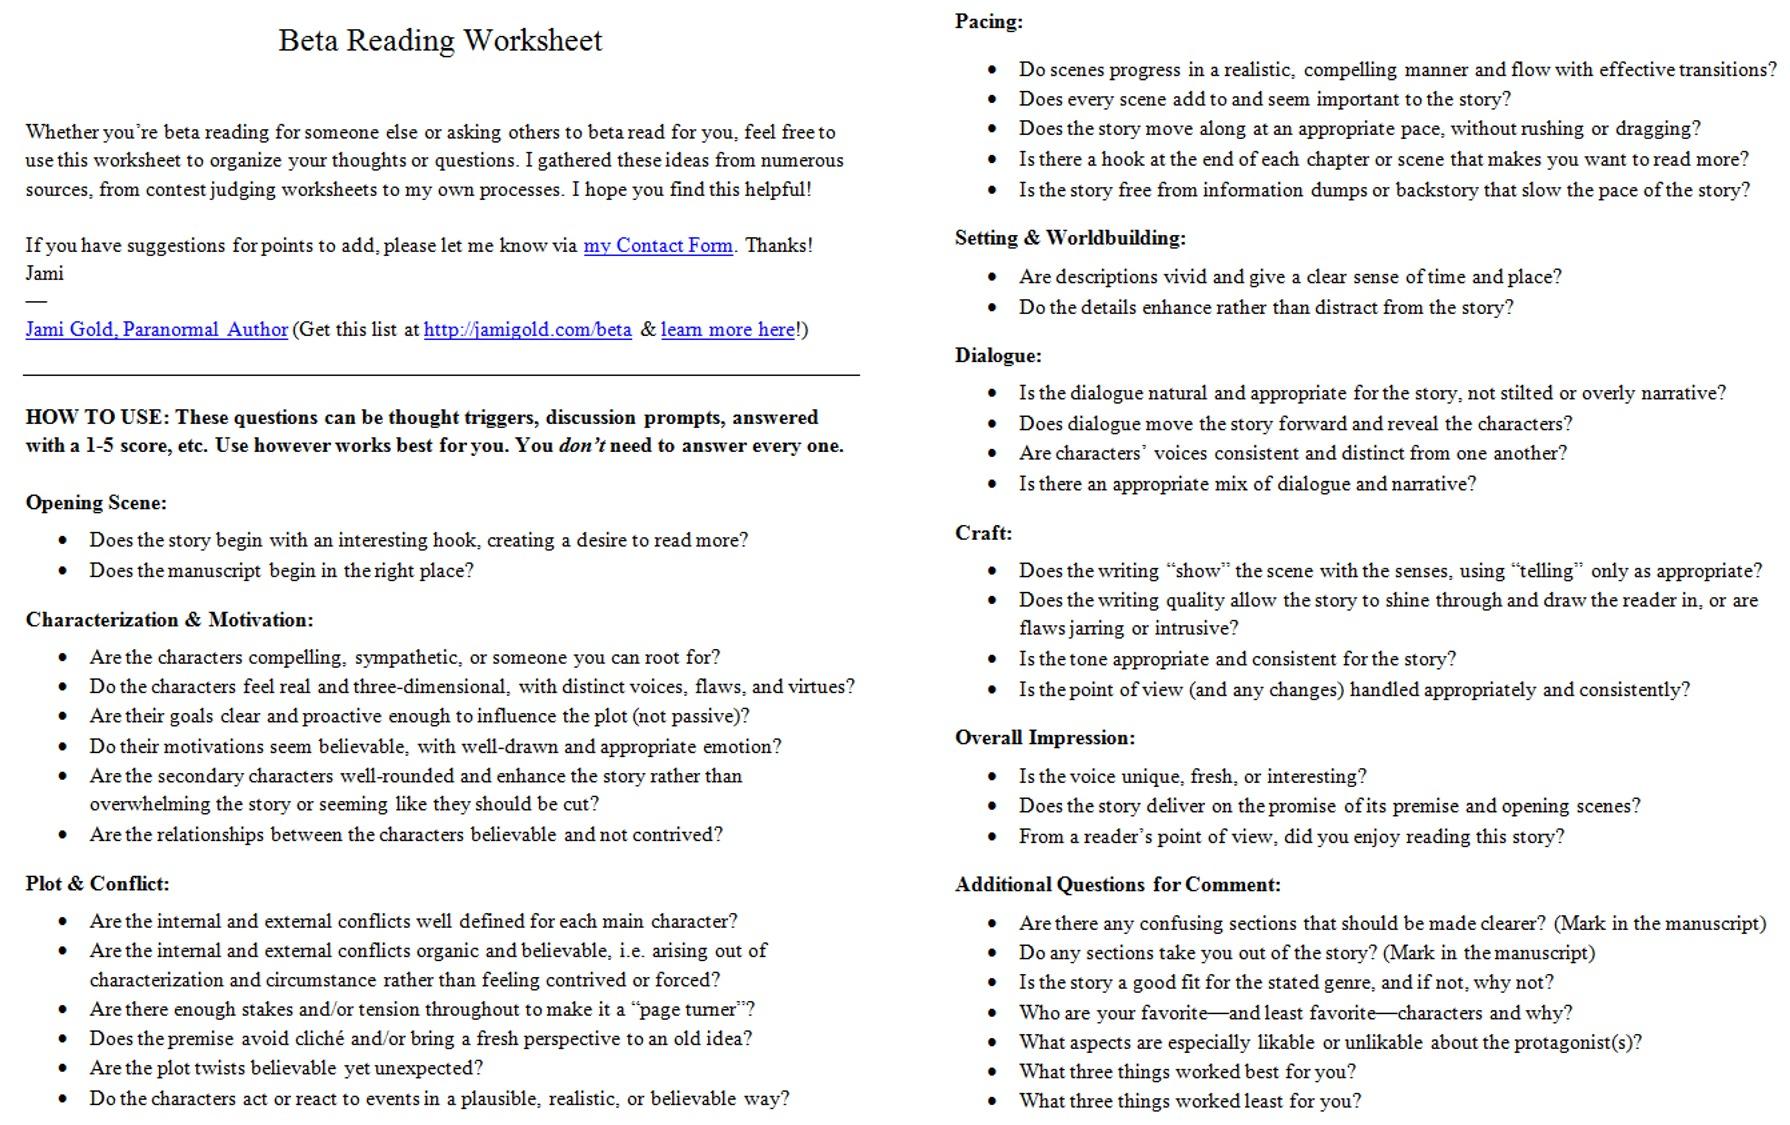 Aldiablosus  Unusual Worksheets For Writers  Jami Gold Paranormal Author With Fascinating Screen Shot Of The Twopage Beta Reading Worksheet With Astounding Kindergarten Morning Worksheets Also Counting Money Worksheets For Second Grade In Addition Fossil Fuel Worksheet And Authors Point Of View Worksheets As Well As Reading Worksheets For Grade  Additionally Birthday Party Planning Worksheet From Jamigoldcom With Aldiablosus  Fascinating Worksheets For Writers  Jami Gold Paranormal Author With Astounding Screen Shot Of The Twopage Beta Reading Worksheet And Unusual Kindergarten Morning Worksheets Also Counting Money Worksheets For Second Grade In Addition Fossil Fuel Worksheet From Jamigoldcom